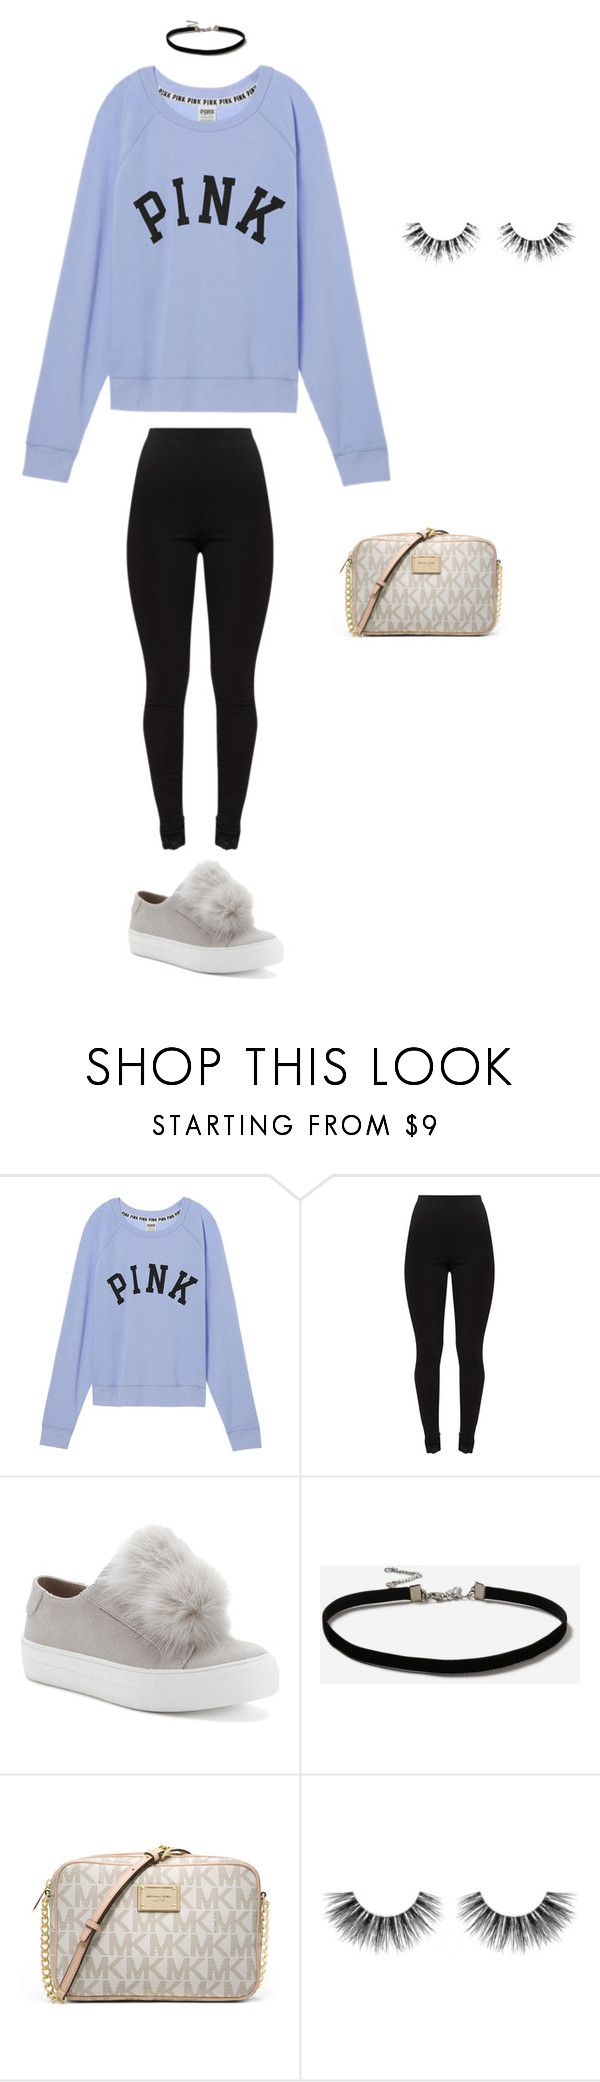 ariana grande inspired fit by jeana-becton on Polyvore featuring Victoria's Secret, Candie's, MICHAEL Michael Kors, Topshop, Velour Lashes, cute, Pink, Unique, ArianaGrande and victoriassercret